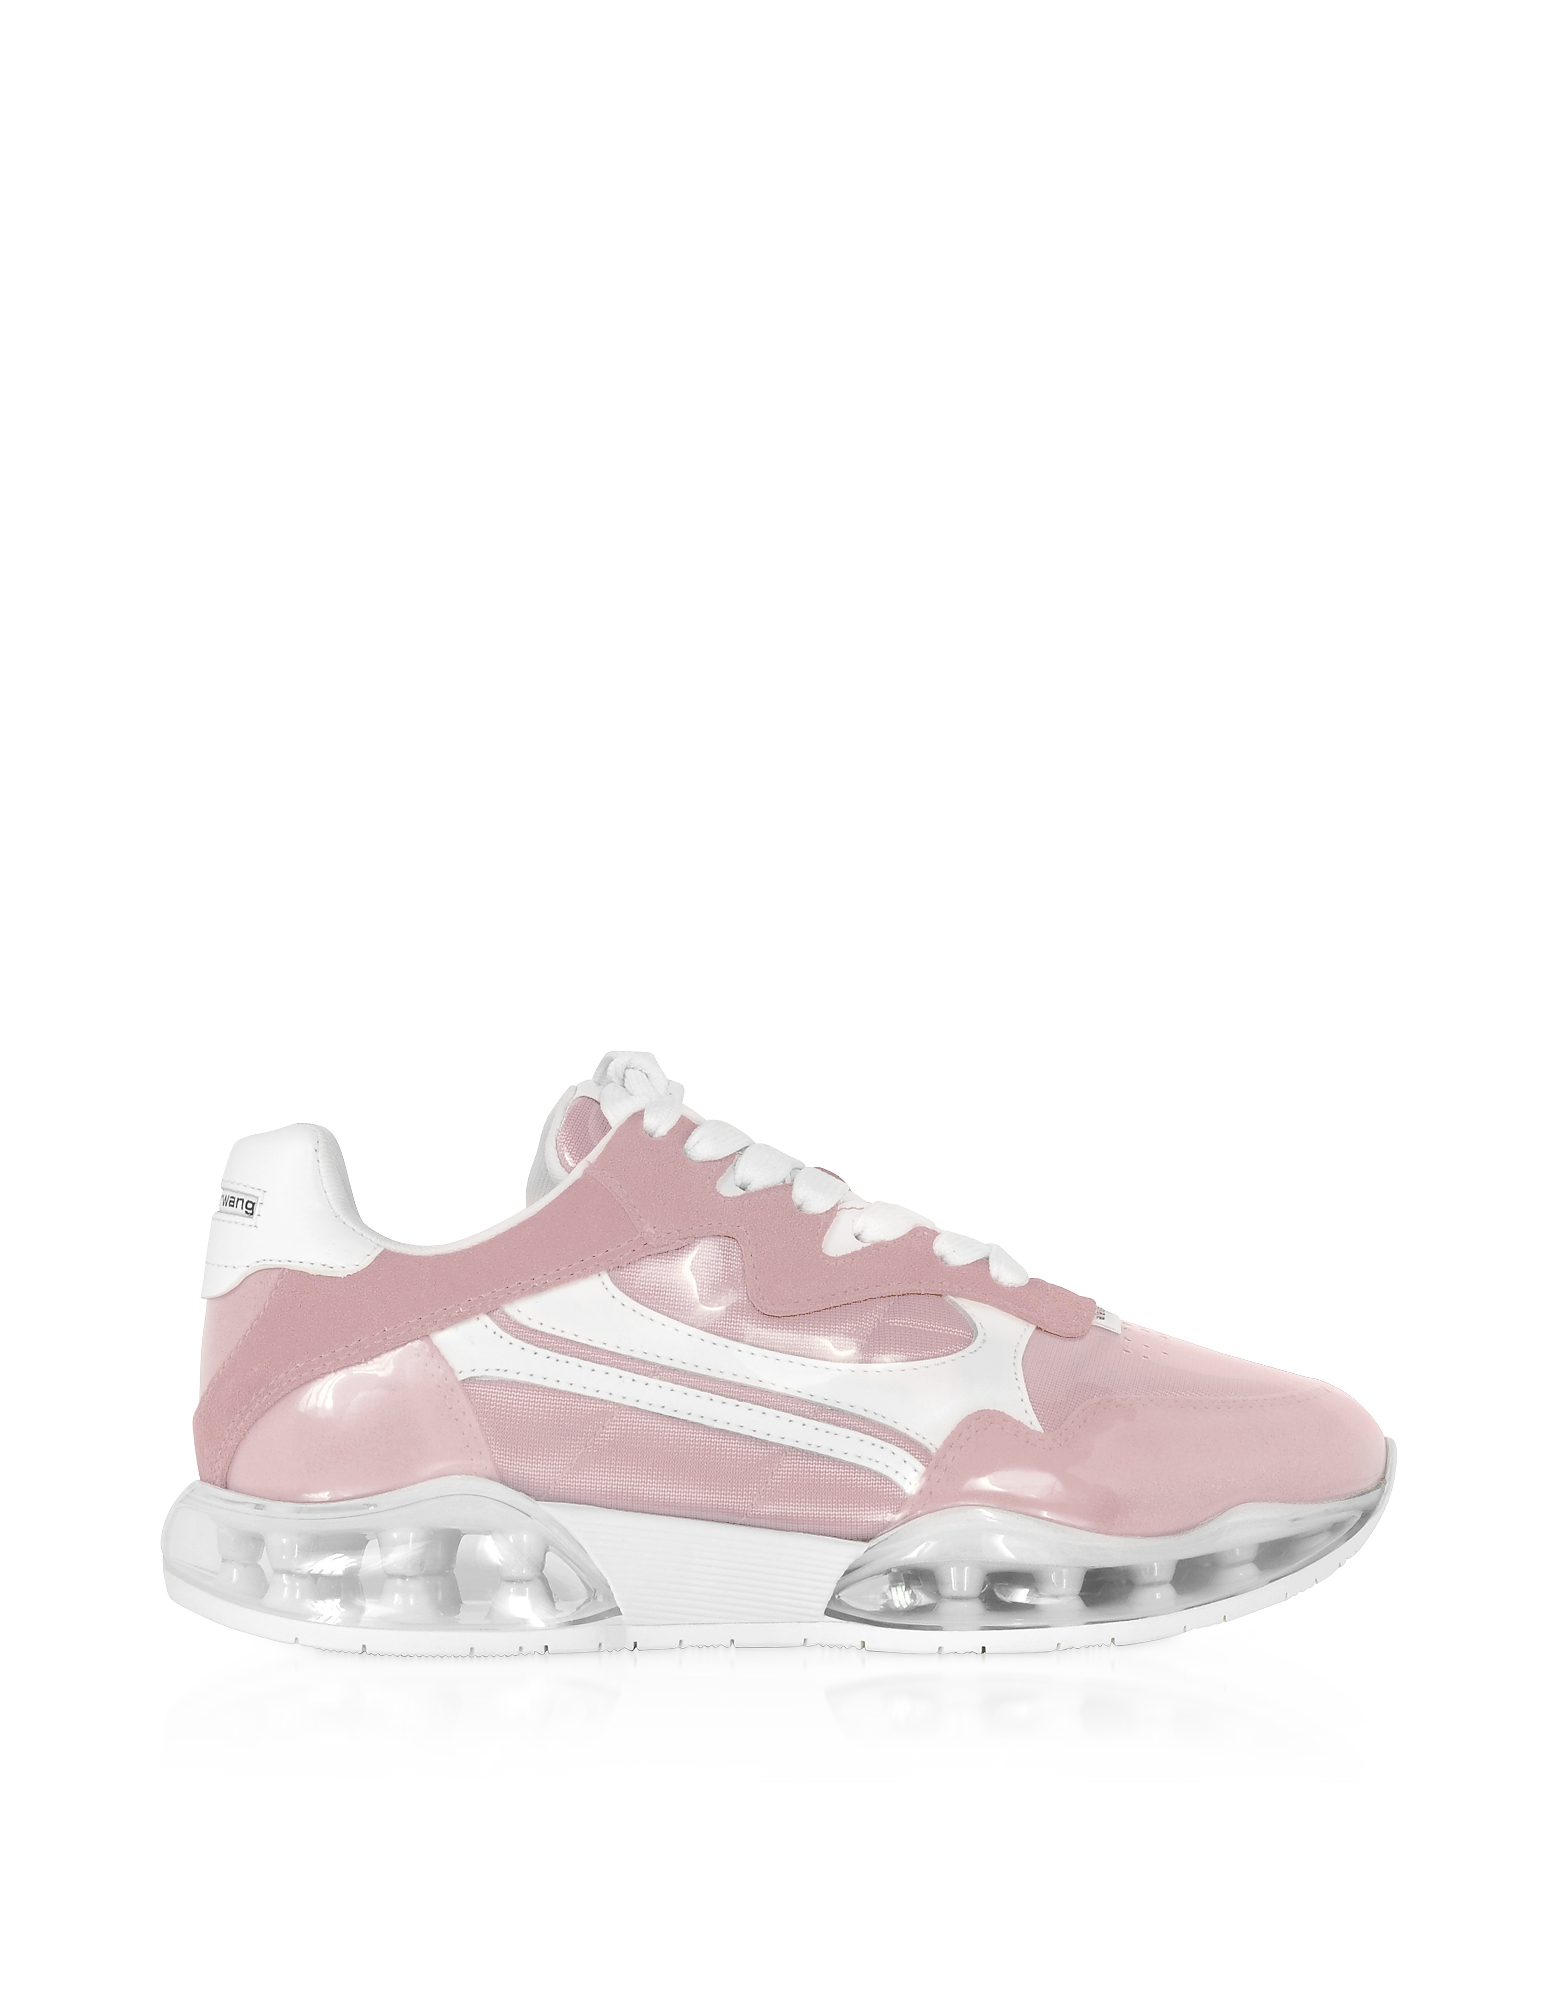 Alexander Wang Awnyc Stadium Pink Coated Nylon And Suede Women's Sneakers